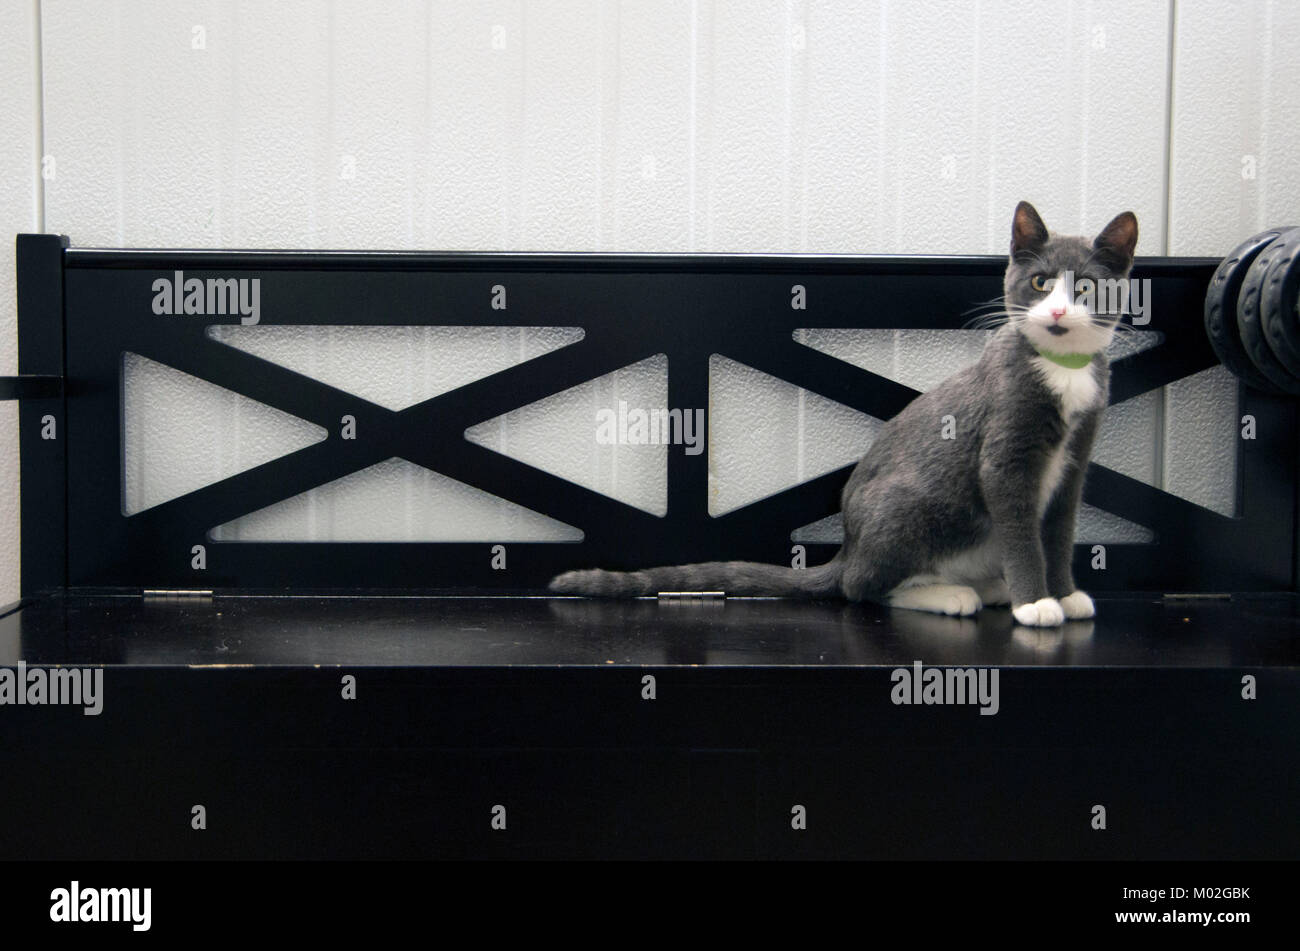 A cat sits on the bench in the animal shelter. - Stock Image